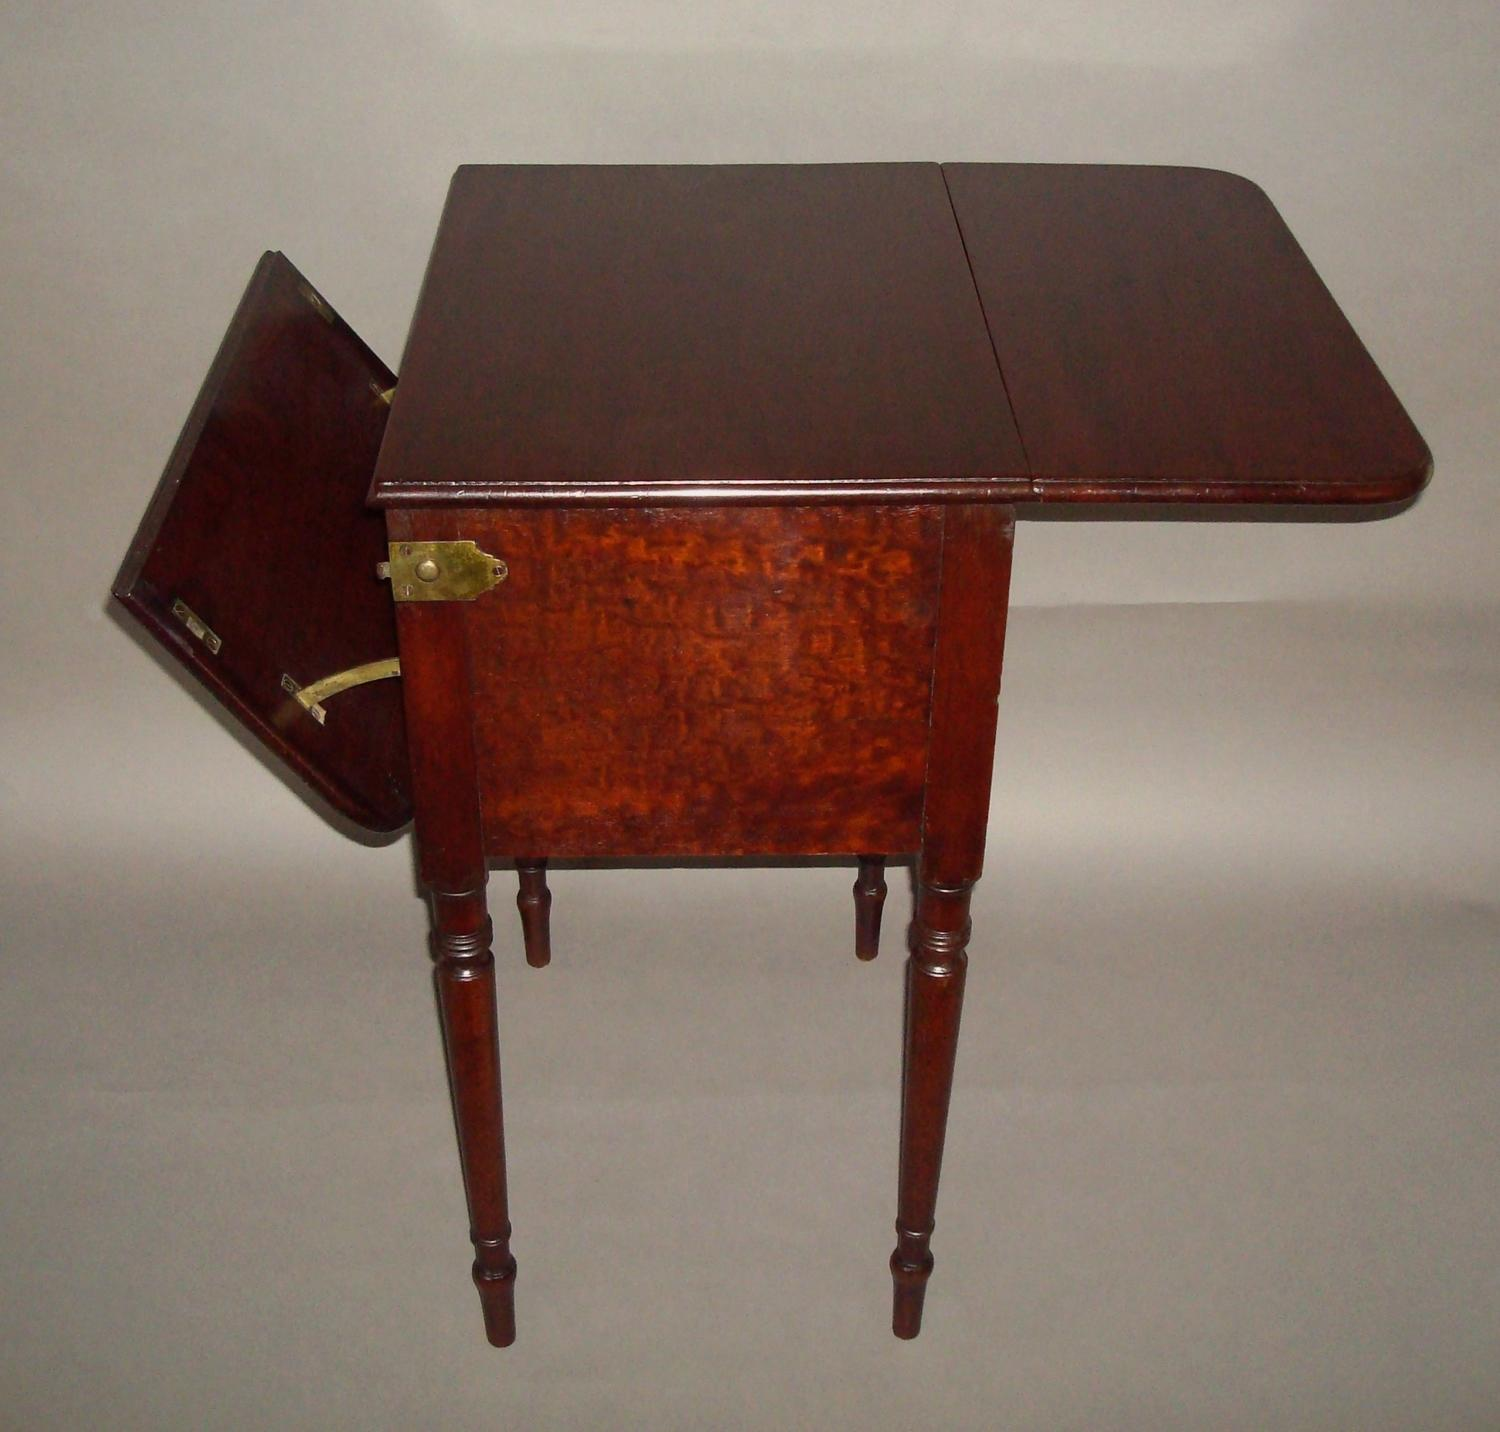 Regency mahogany deception table